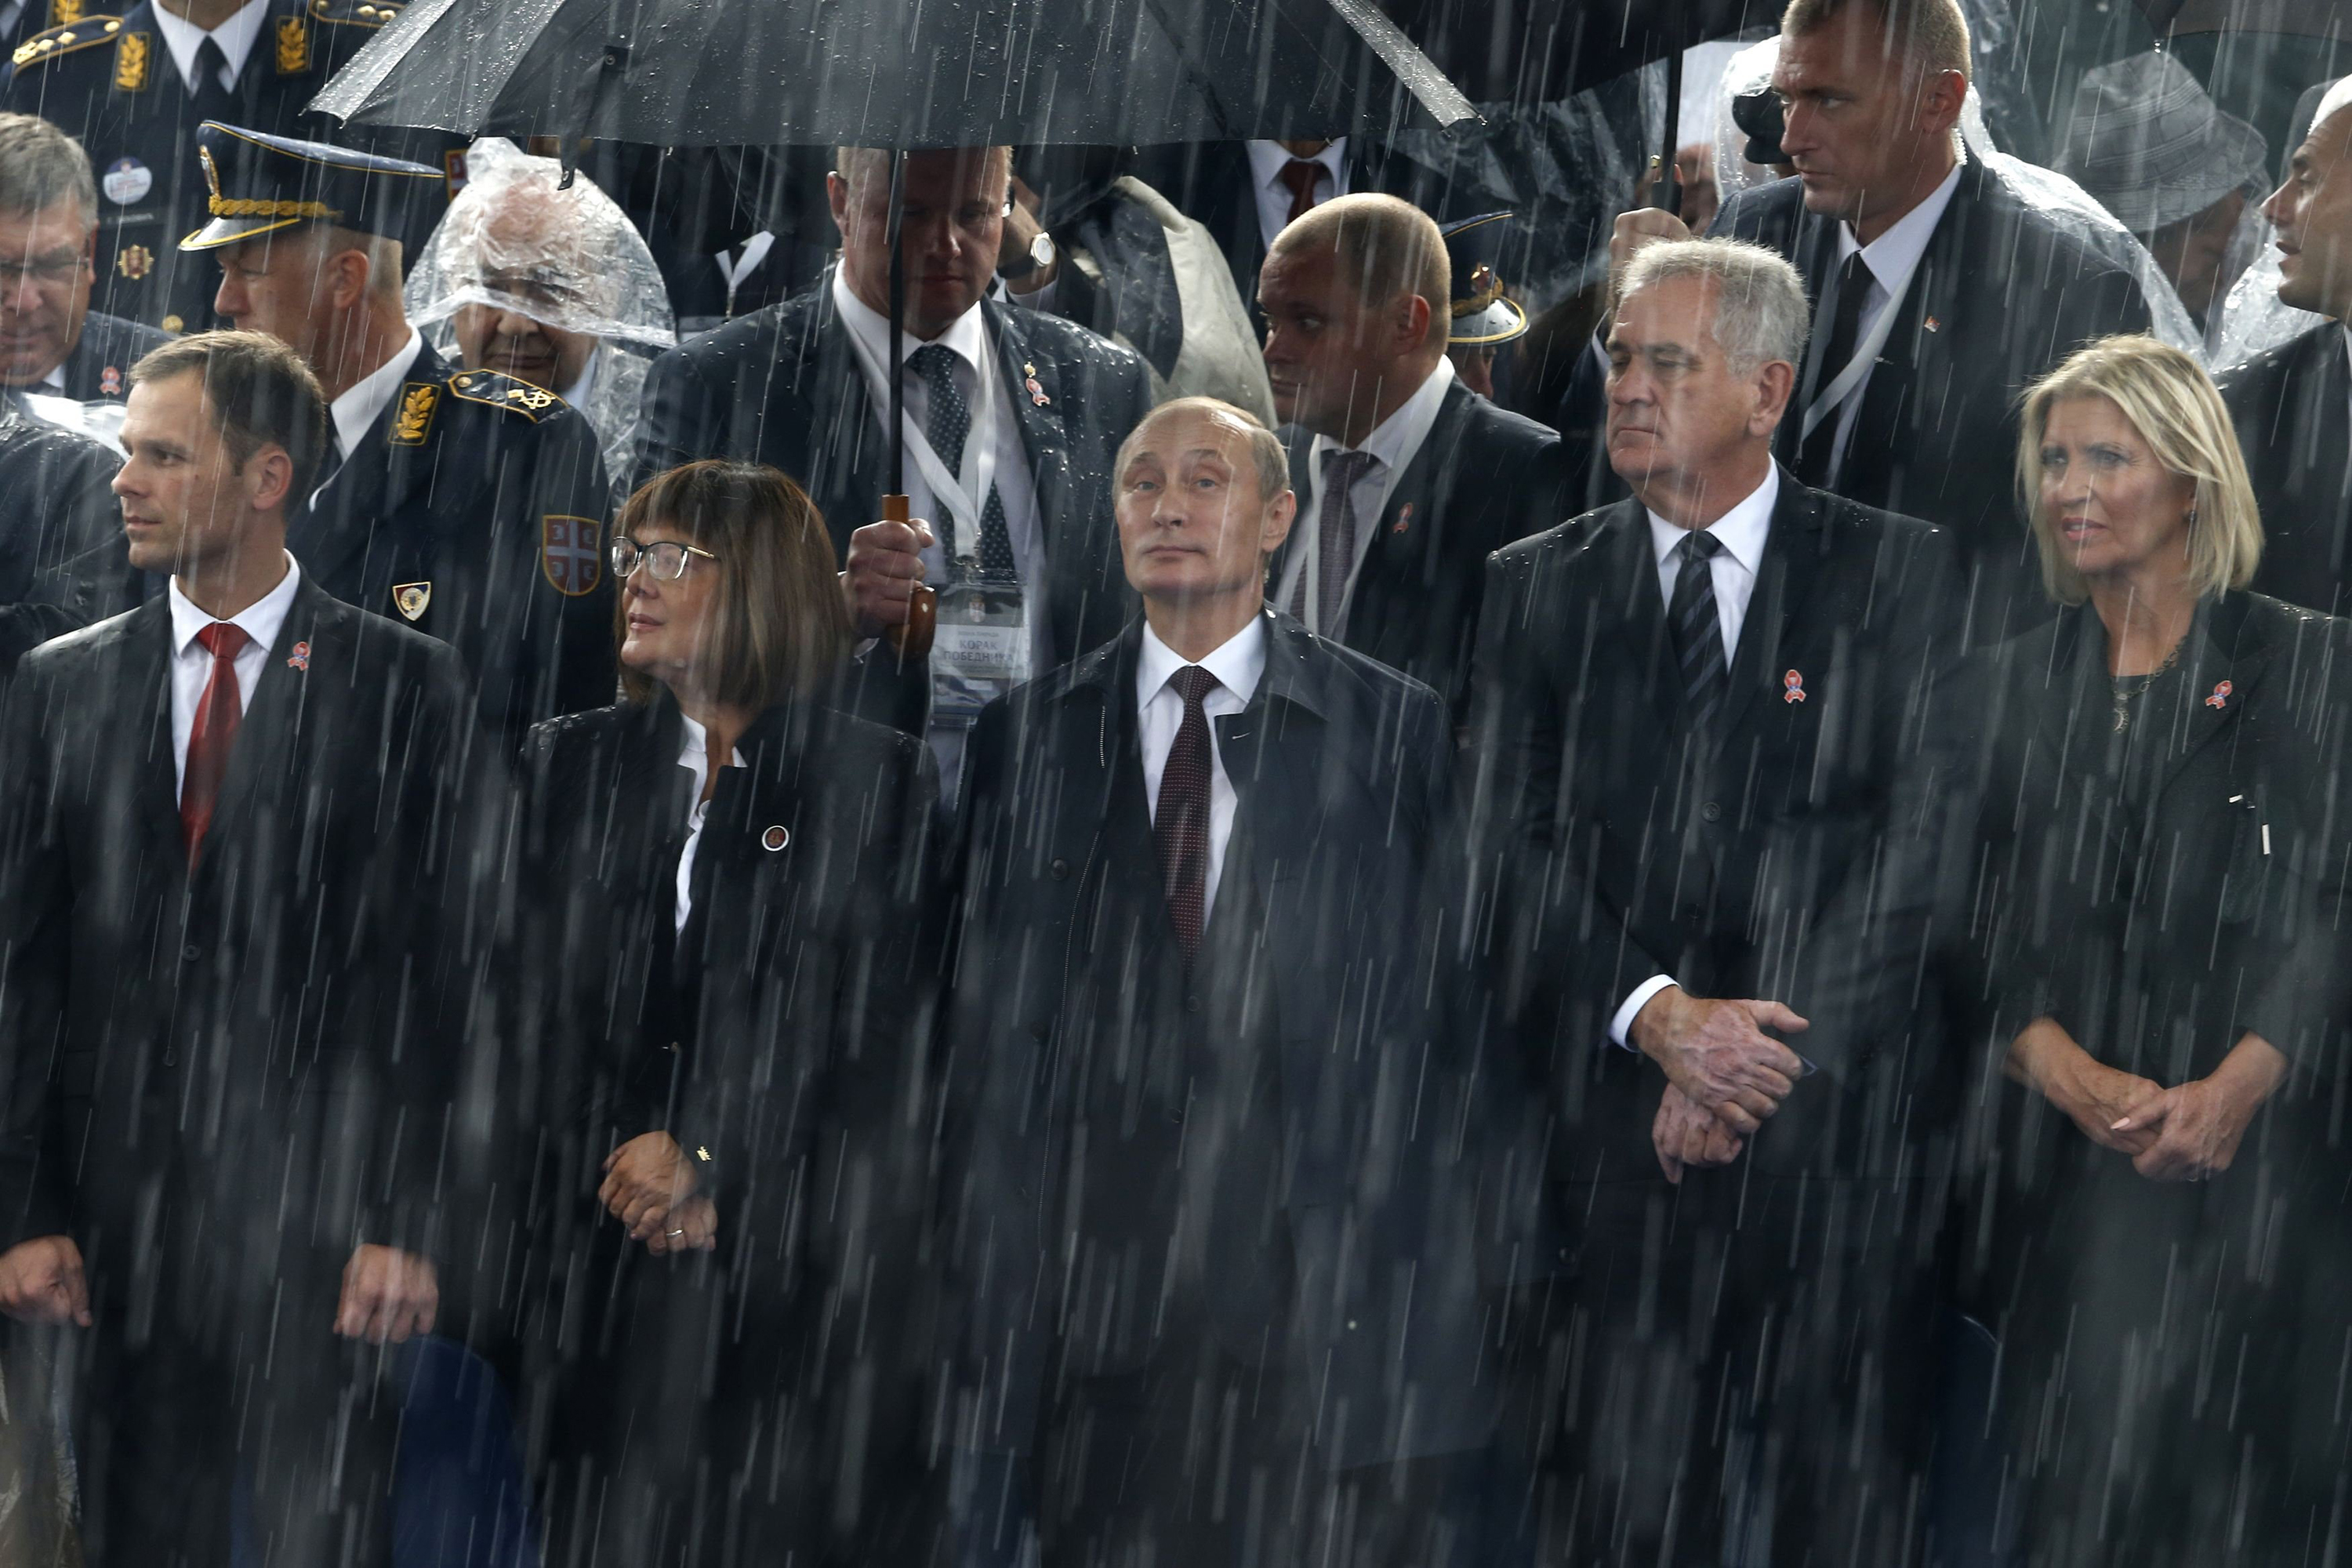 Russian President Vladimir Putin (C) and Serbian President Tomislav Nikolic (2nd R) attend a military parade to mark 70 years since the city's liberation by the Red Army in Belgrade, Serbia on  Oct. 16, 2014.